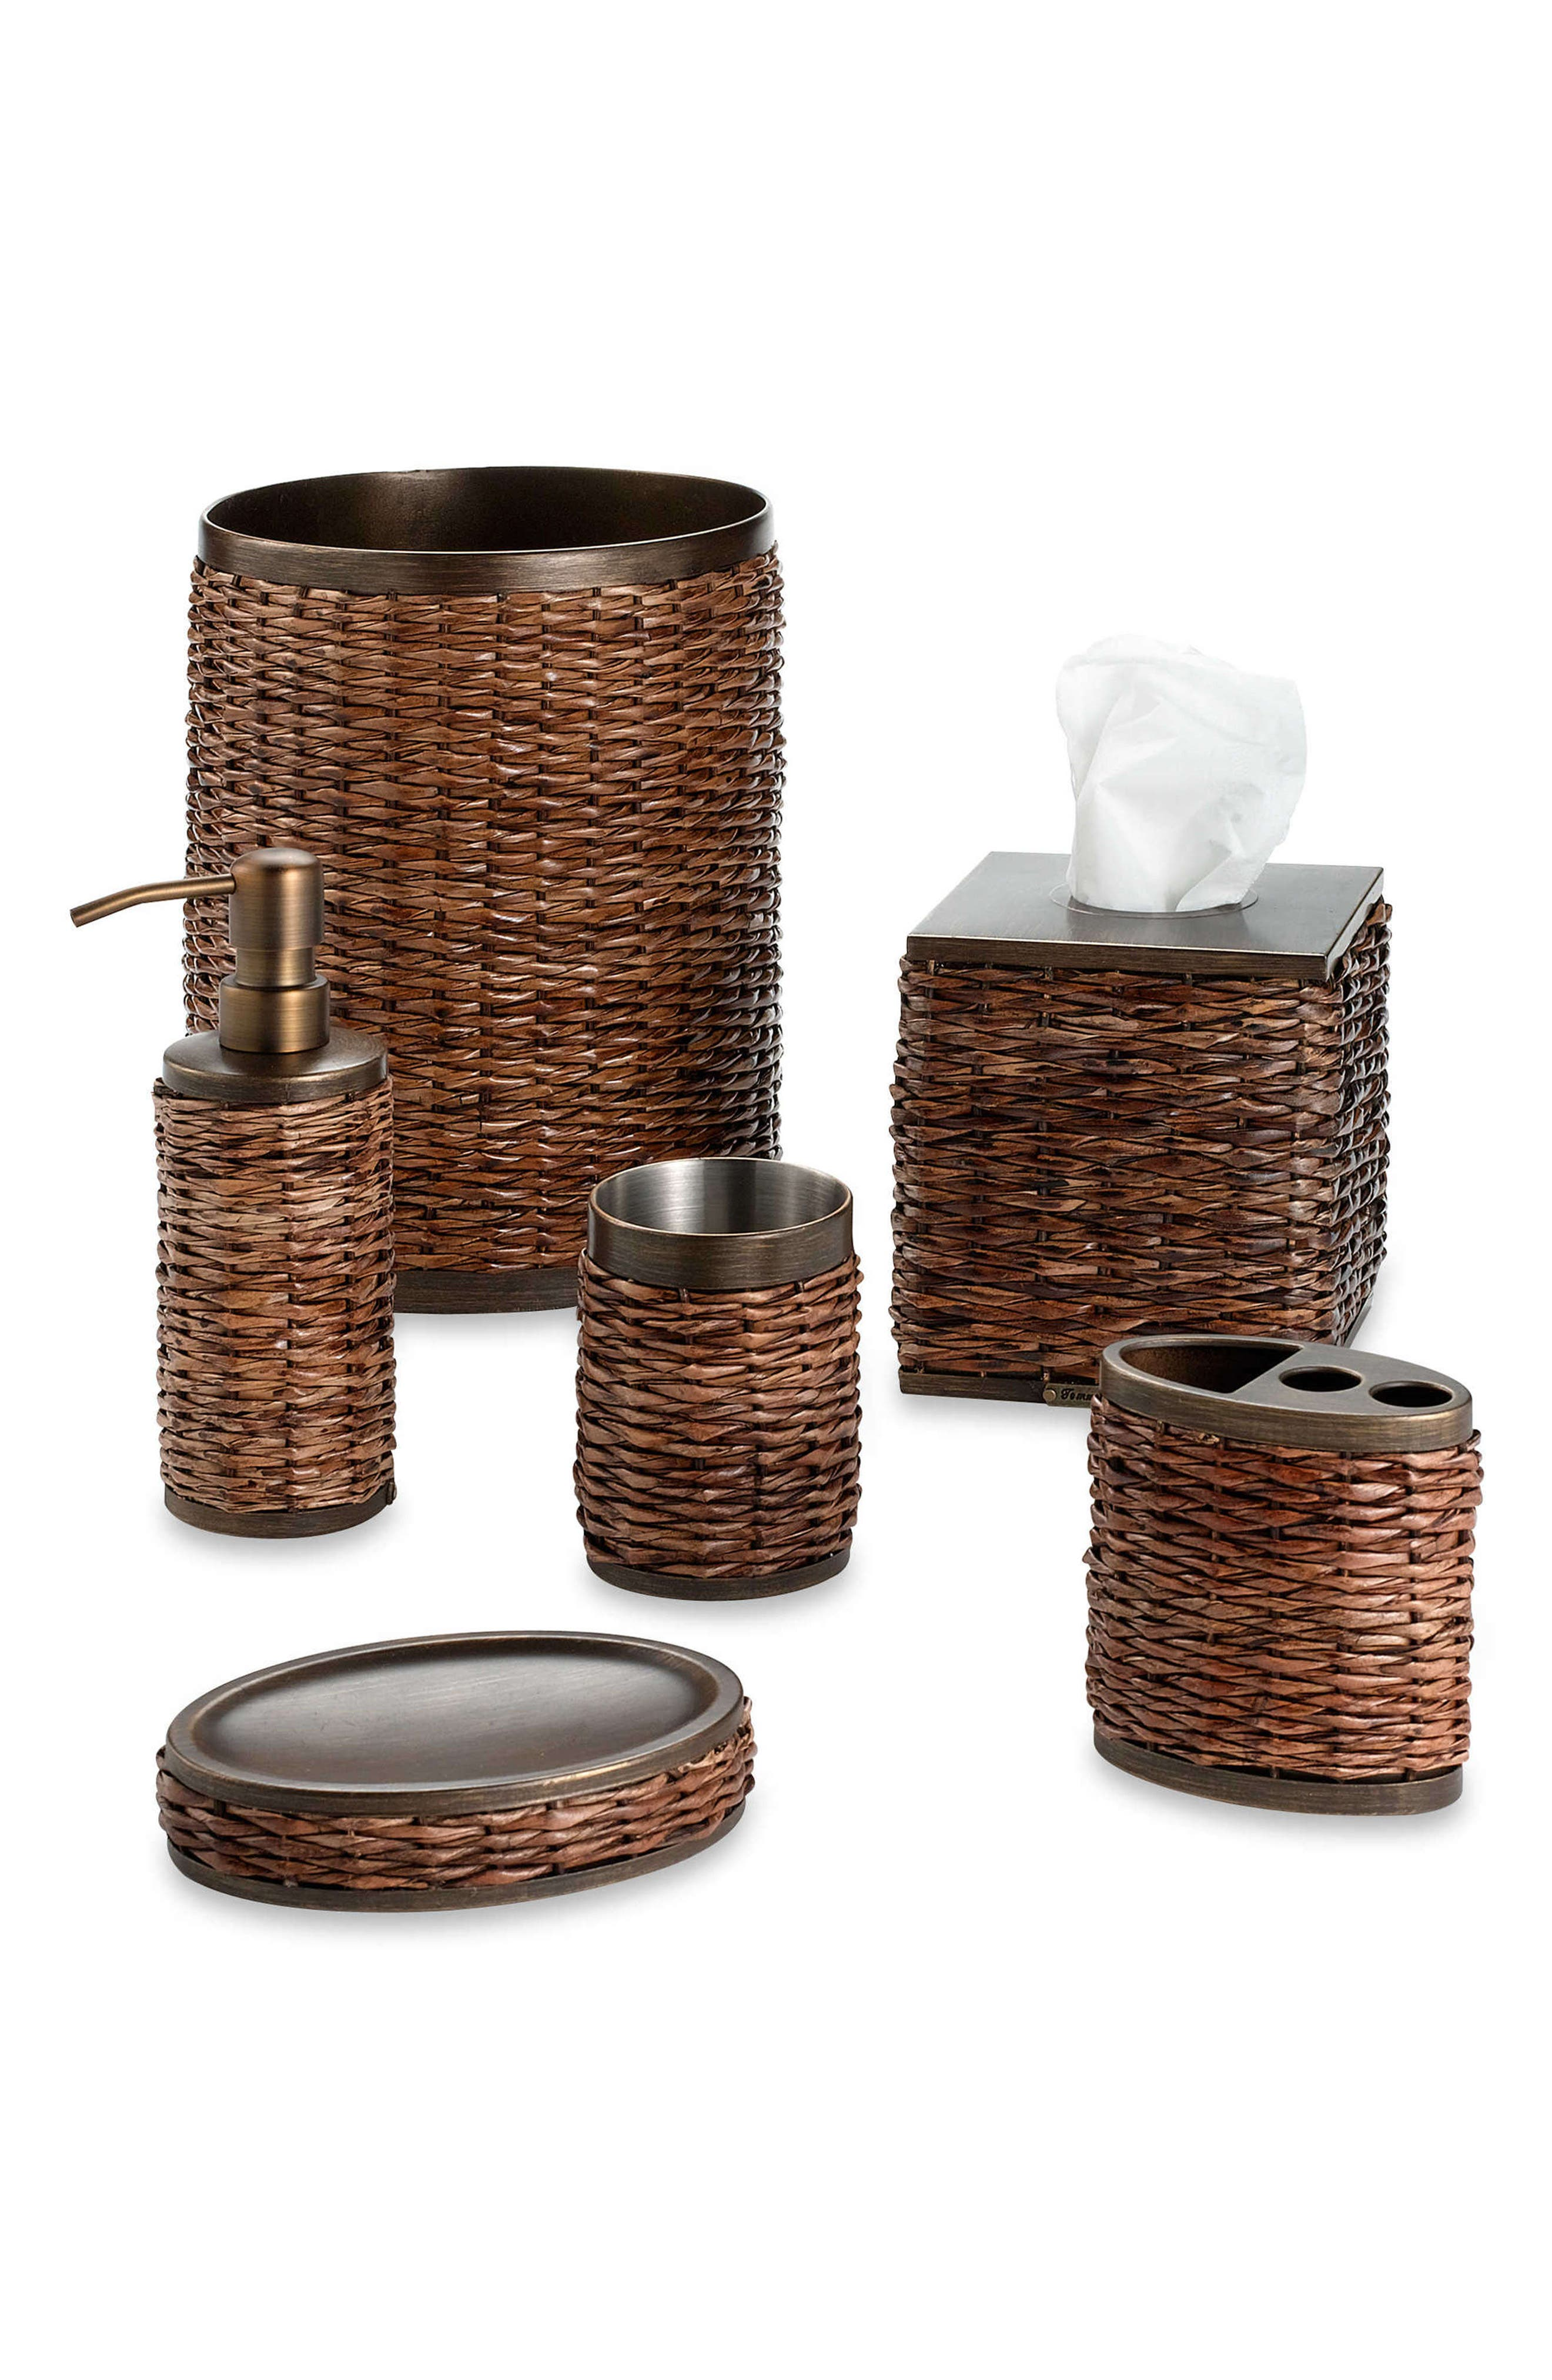 TOMMY BAHAMA, Retreat Wicker Tissue Box Cover, Alternate thumbnail 2, color, DARK BROWN